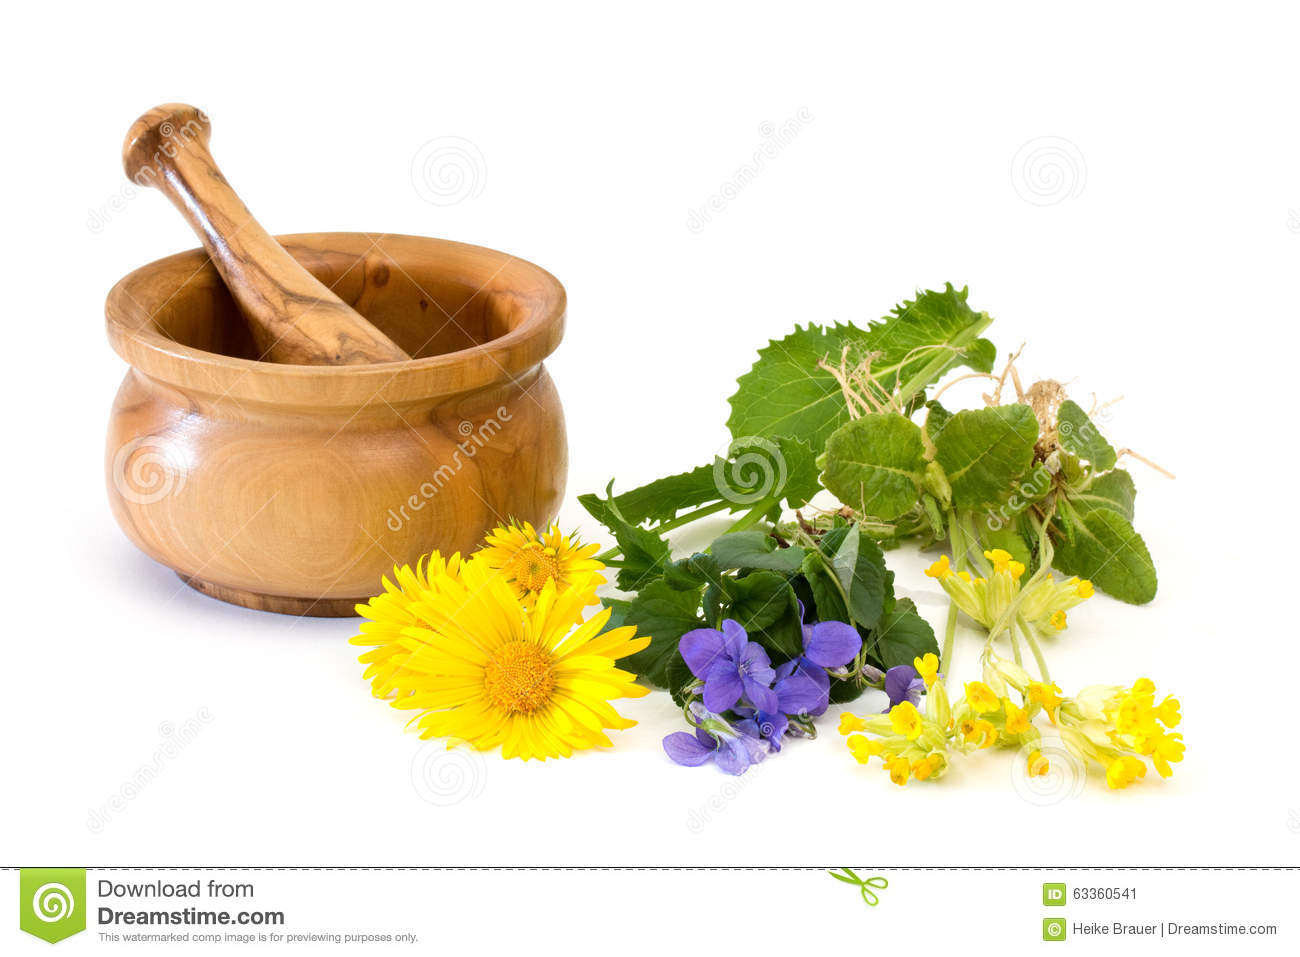 Medicinal Plants With Mortar And Pestle Stock Photo.